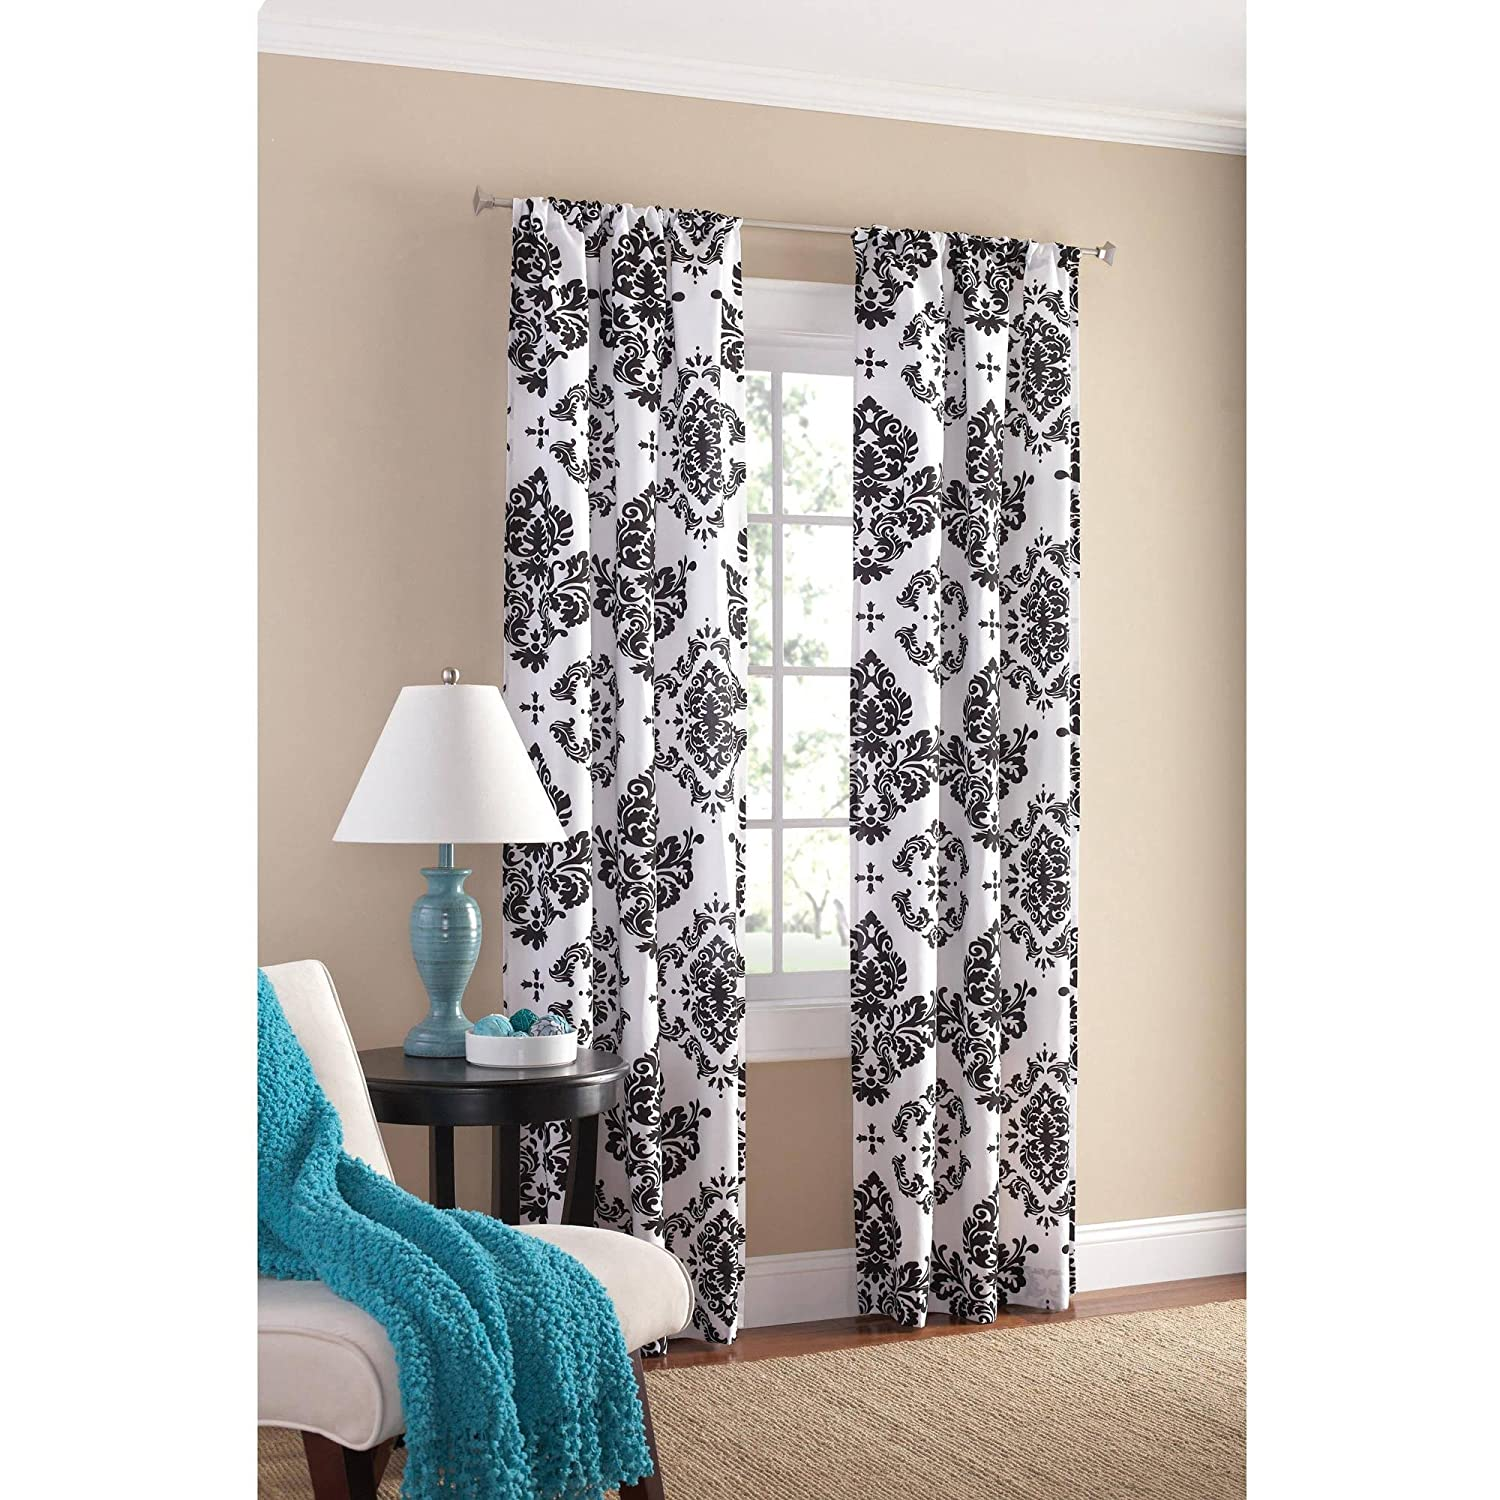 Amazon.com: Black and White Damask Curtain Panel Set of 2, 40x84 ...